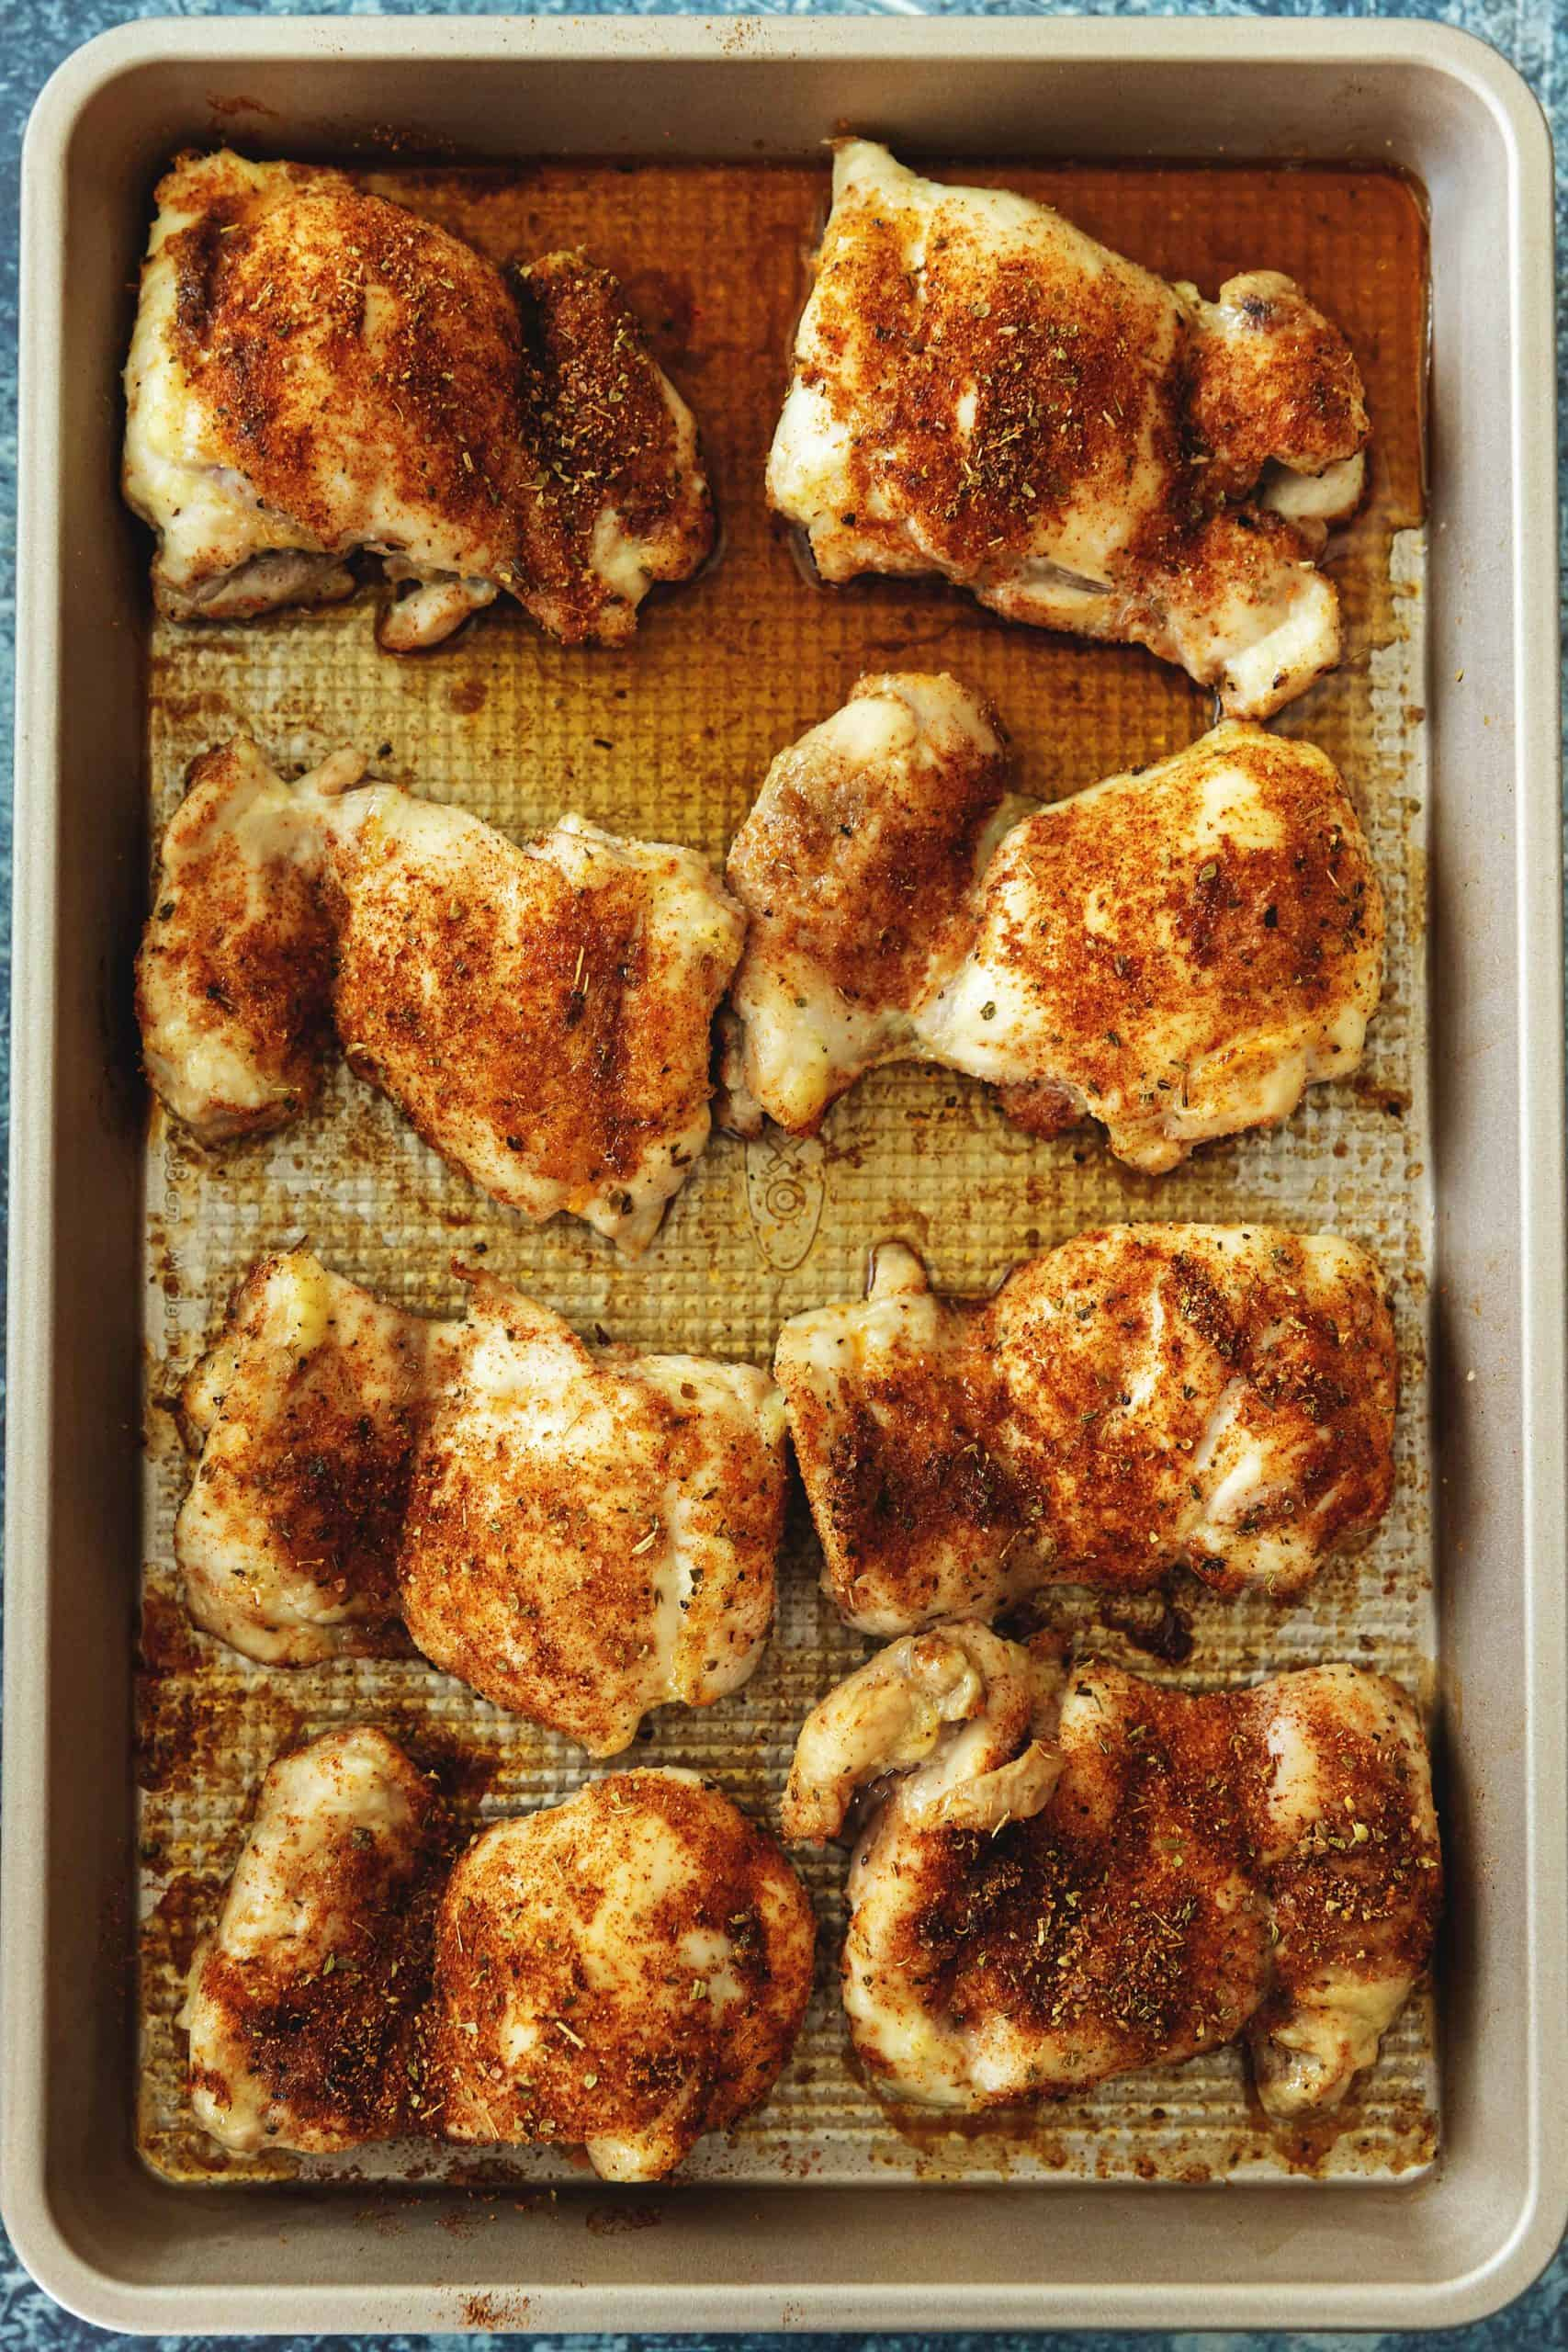 baked boneless skinless chicken thighs on a sheet tray